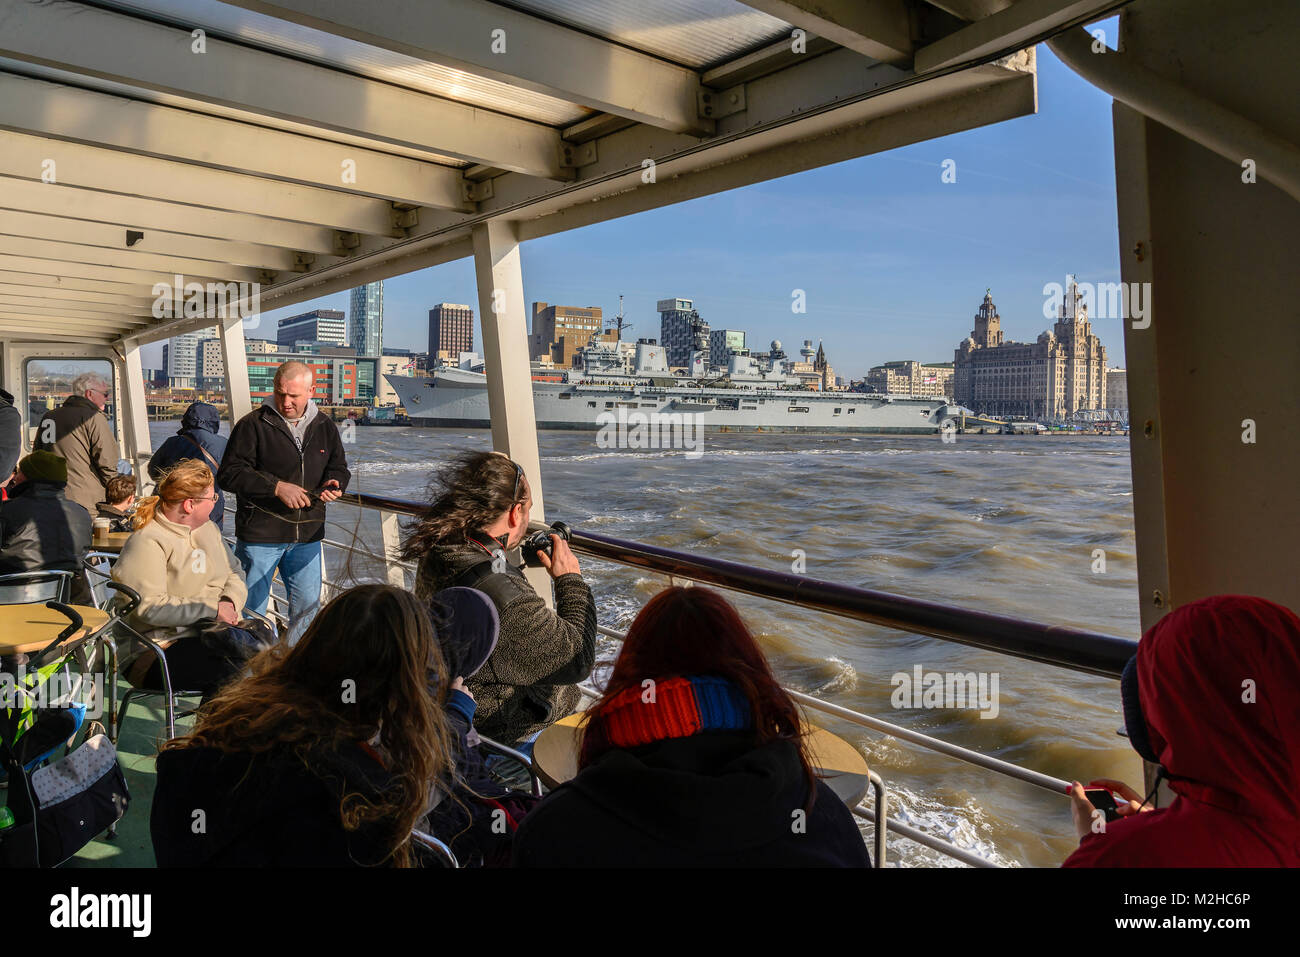 Onboard Mersey ferry pix of crowds. - Stock Image